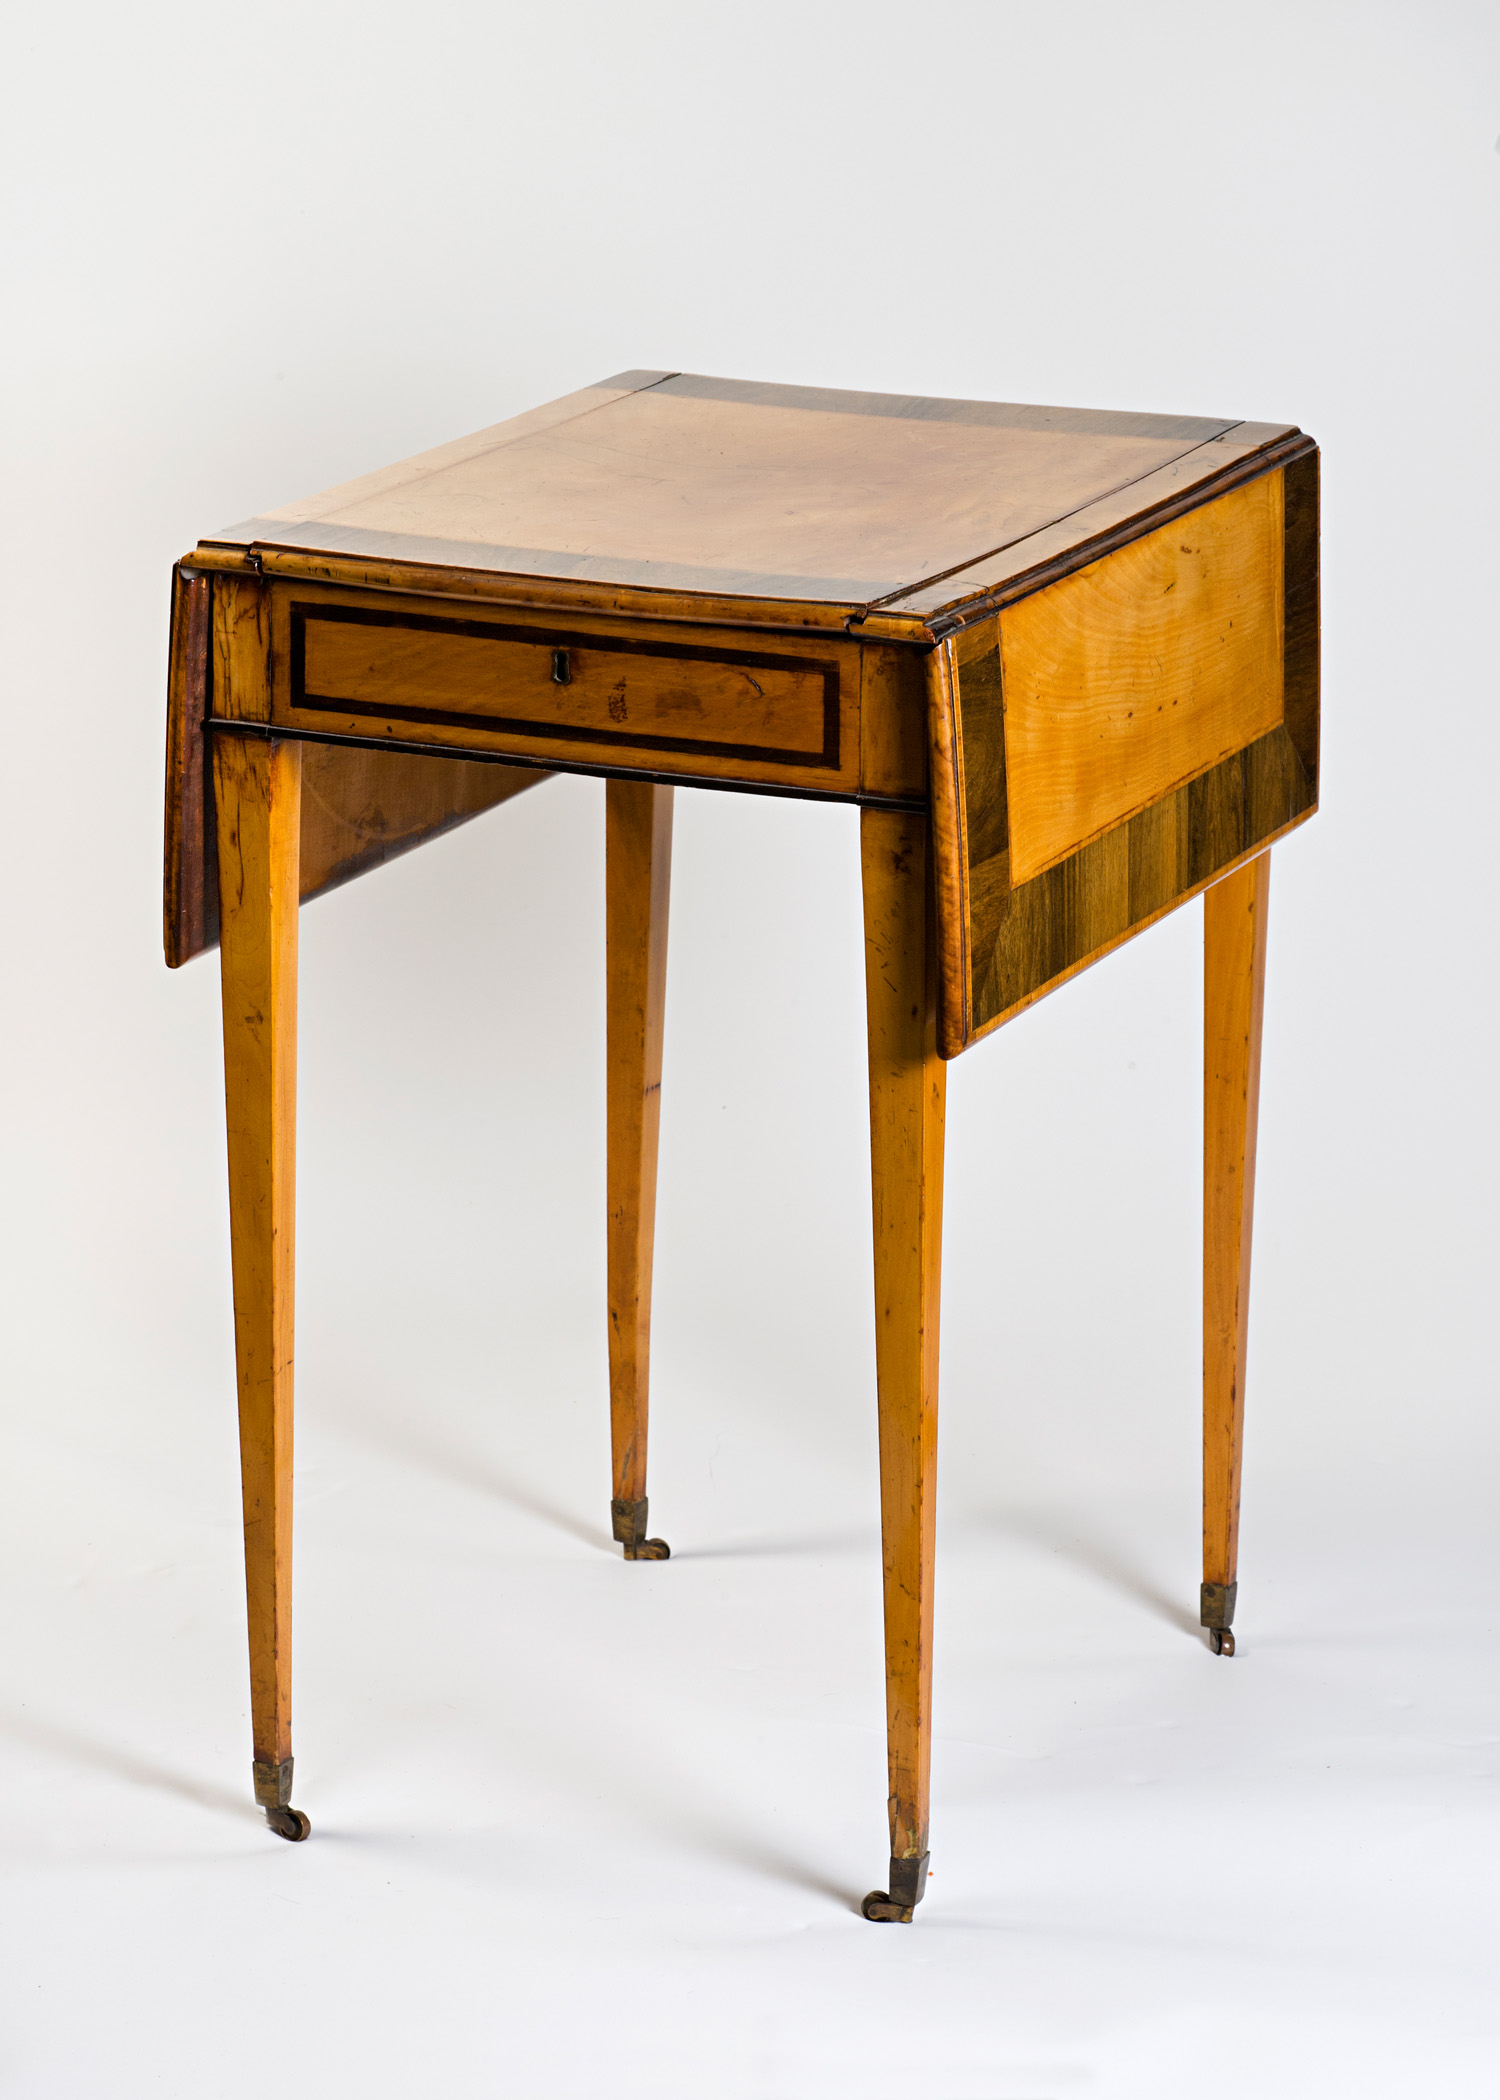 A George III satinwood writing and work table, circa 1795.